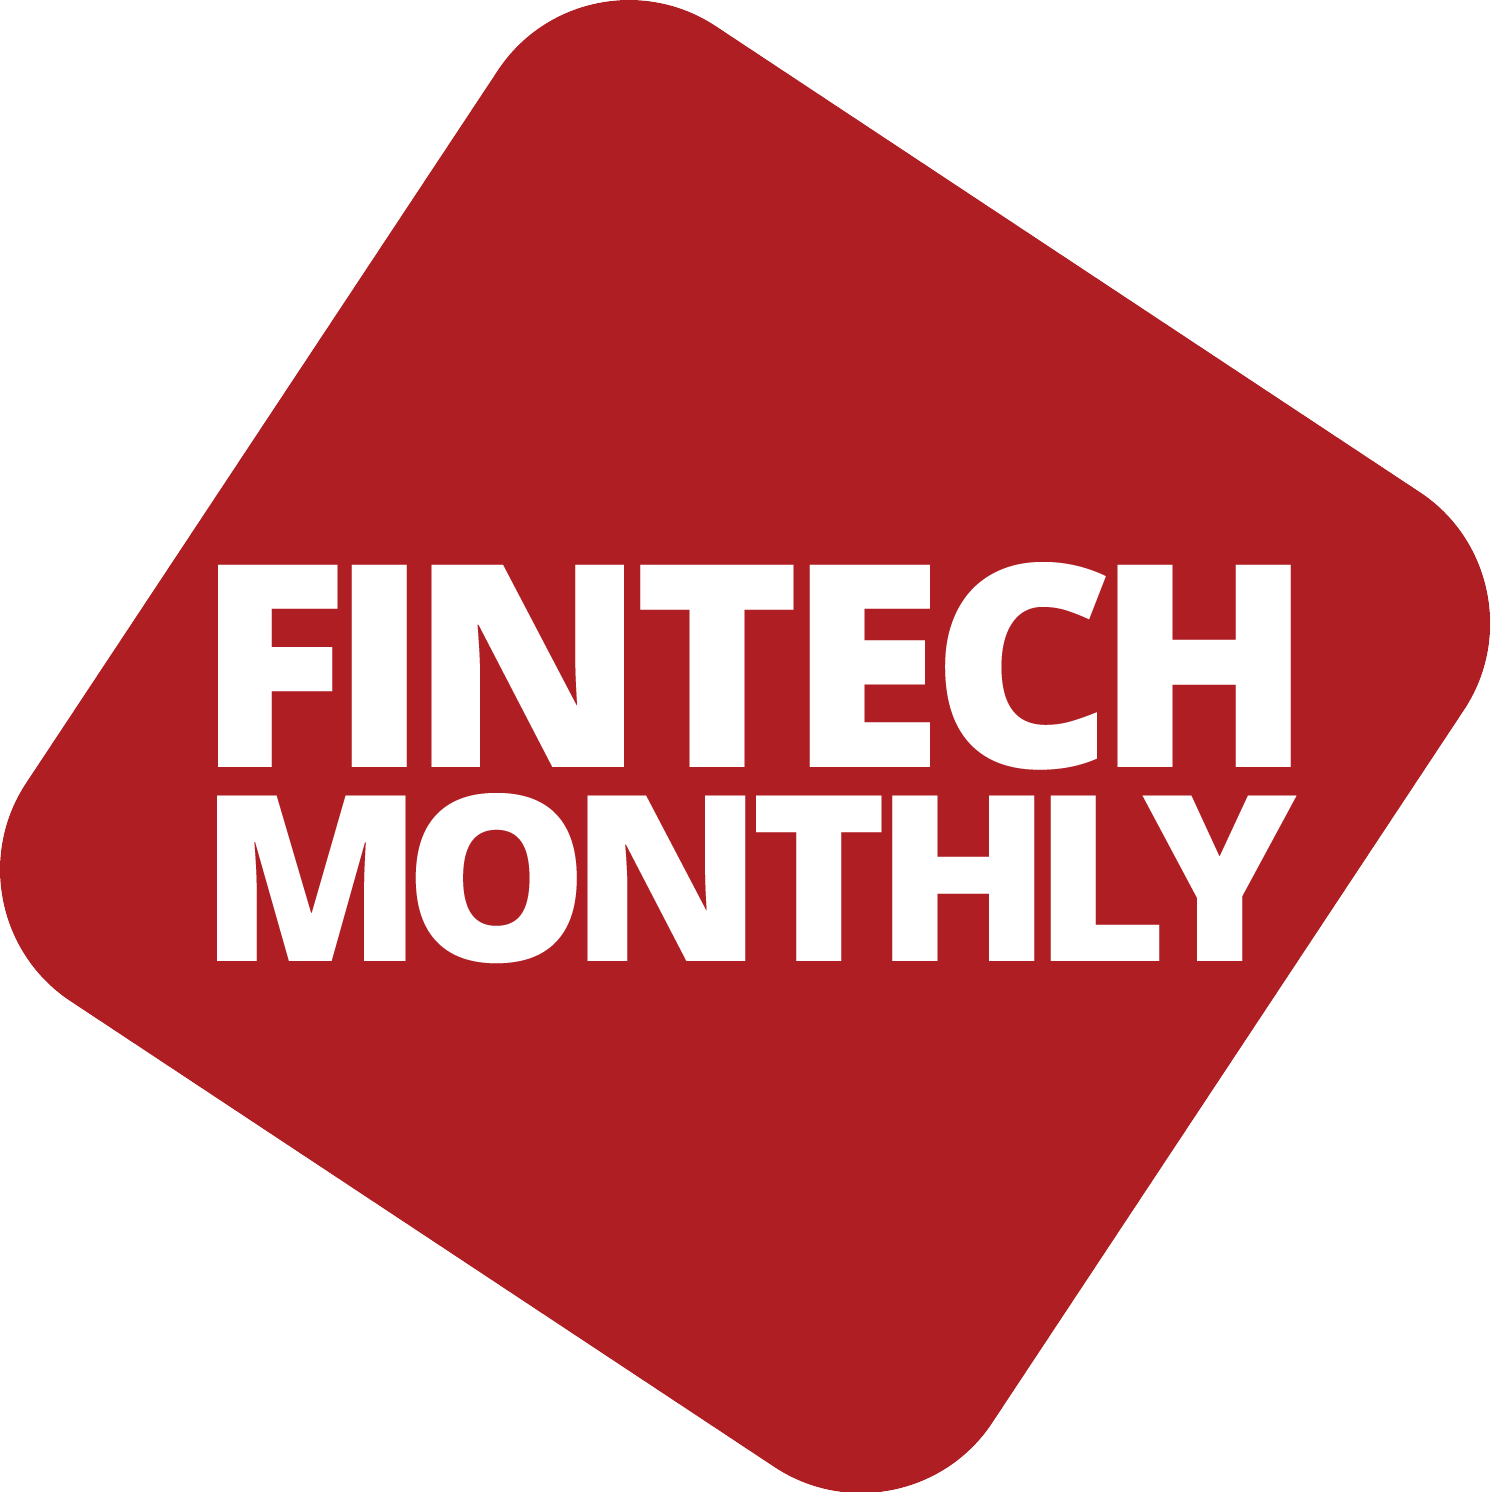 fintech monthly fintechmonthly twitter